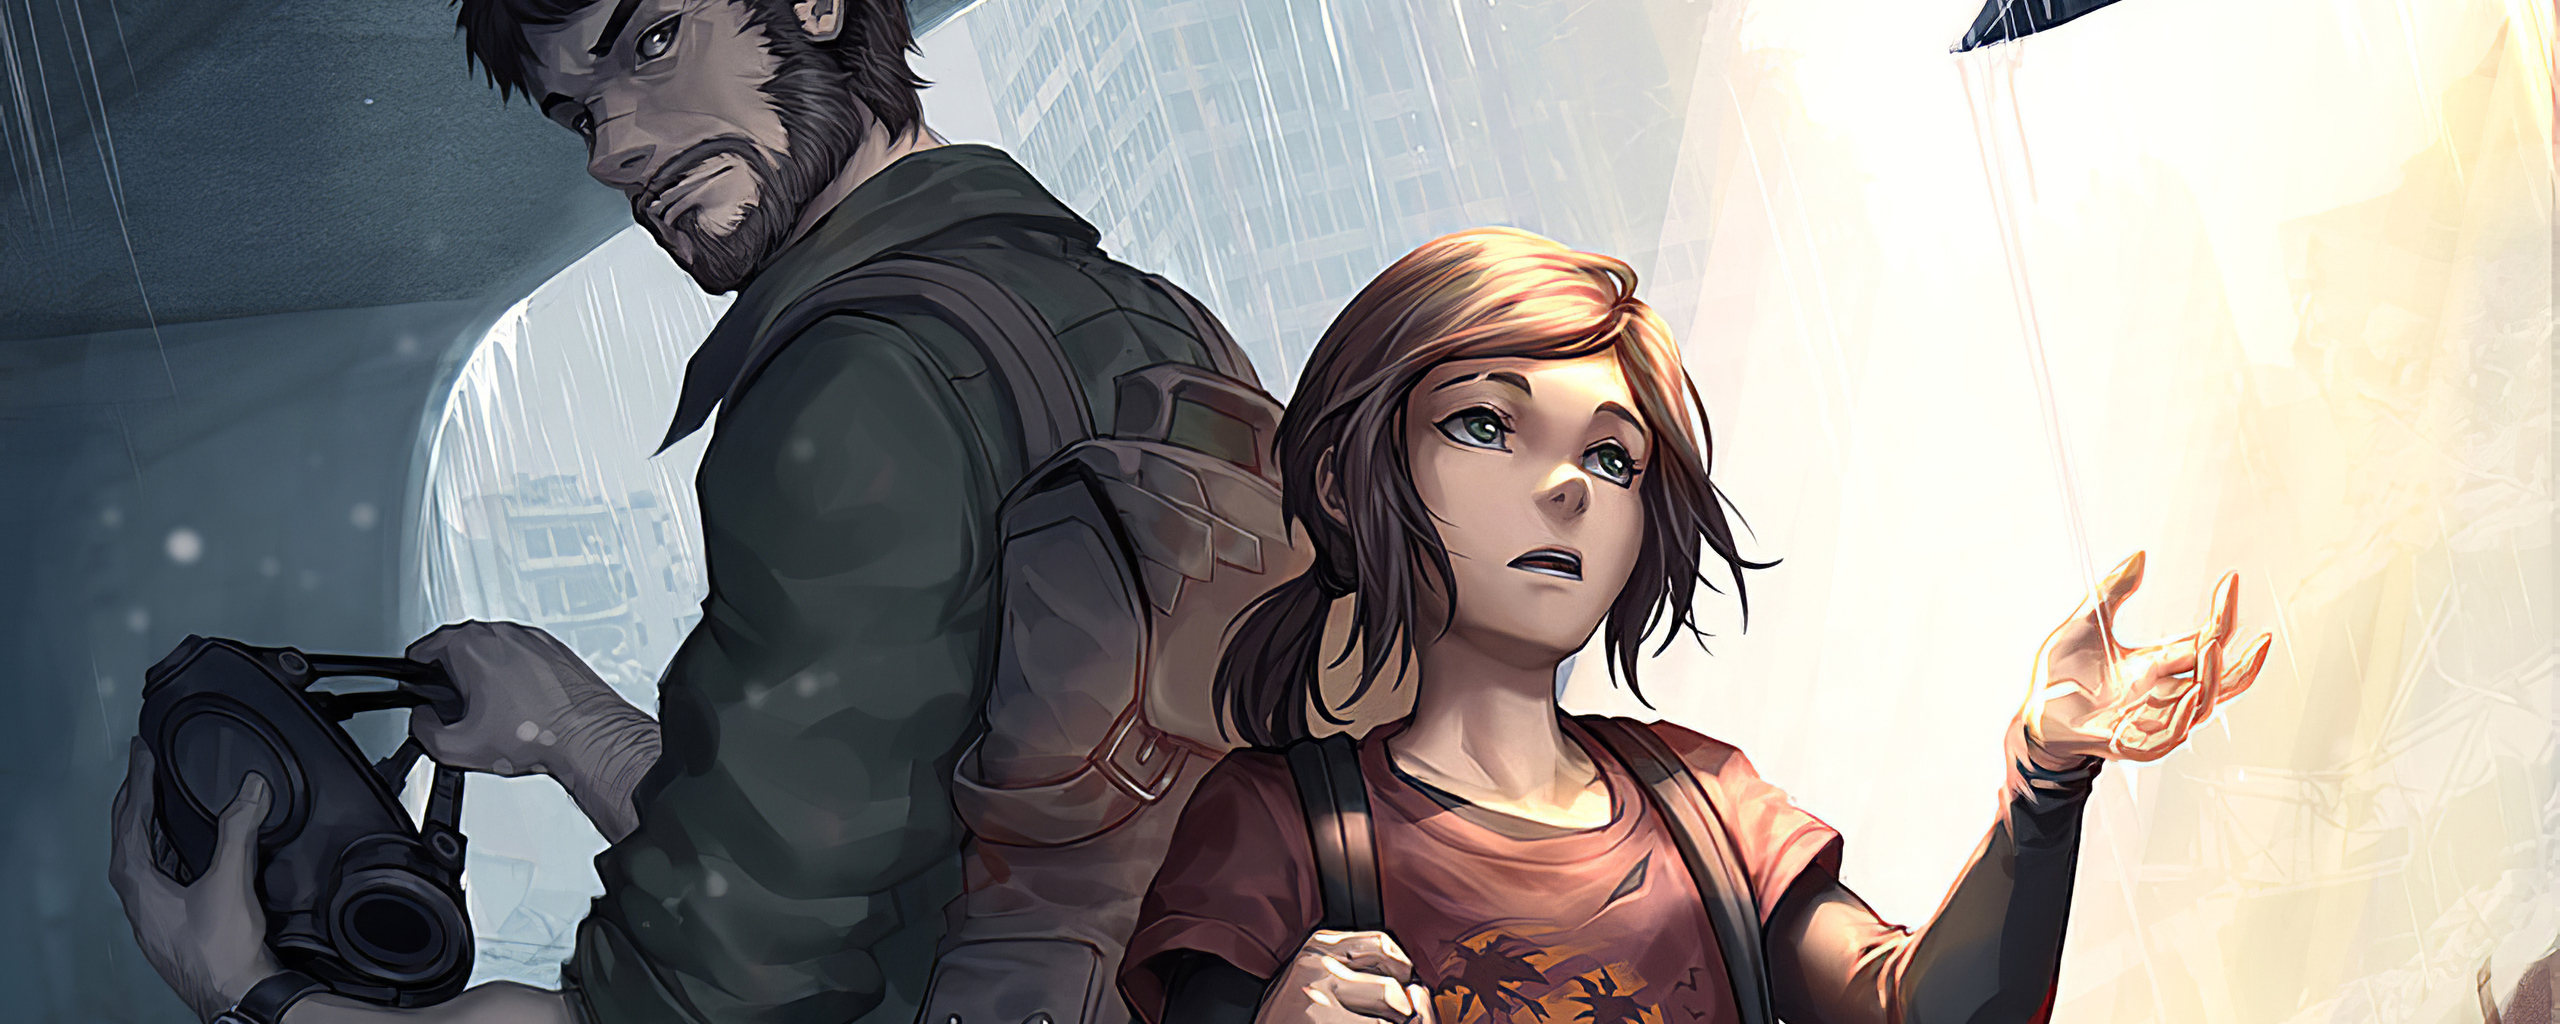 joel-and-ellie-the-last-of-us-2b.jpg